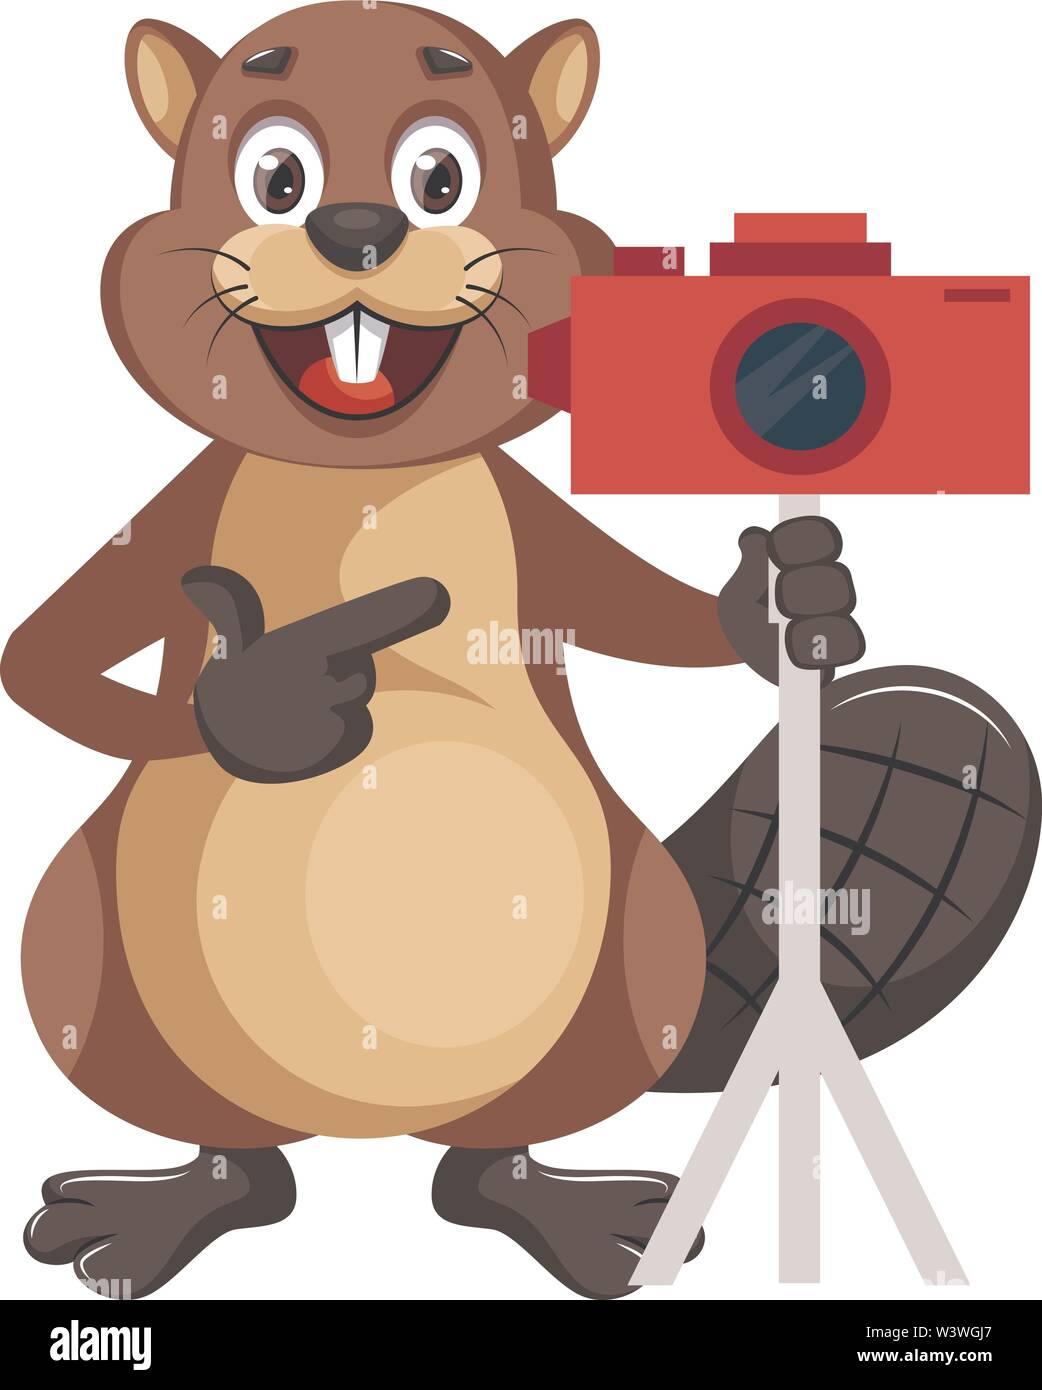 beaver with camera, illustration, vector on white background. - Stock Image